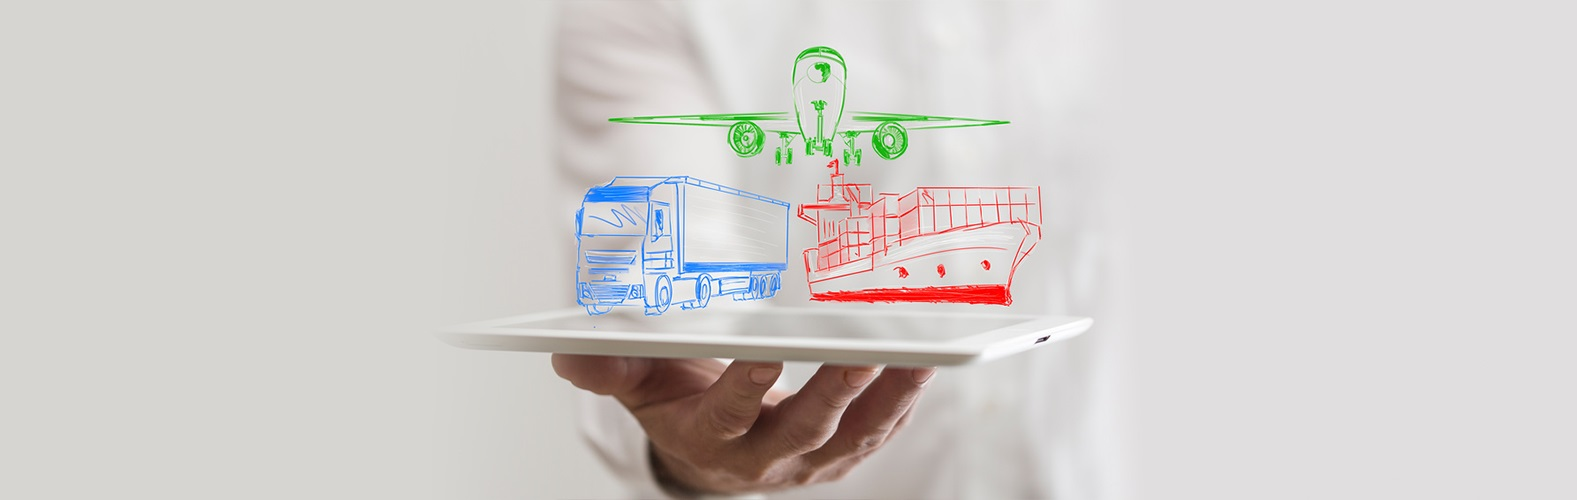 supply chain transformation digitale